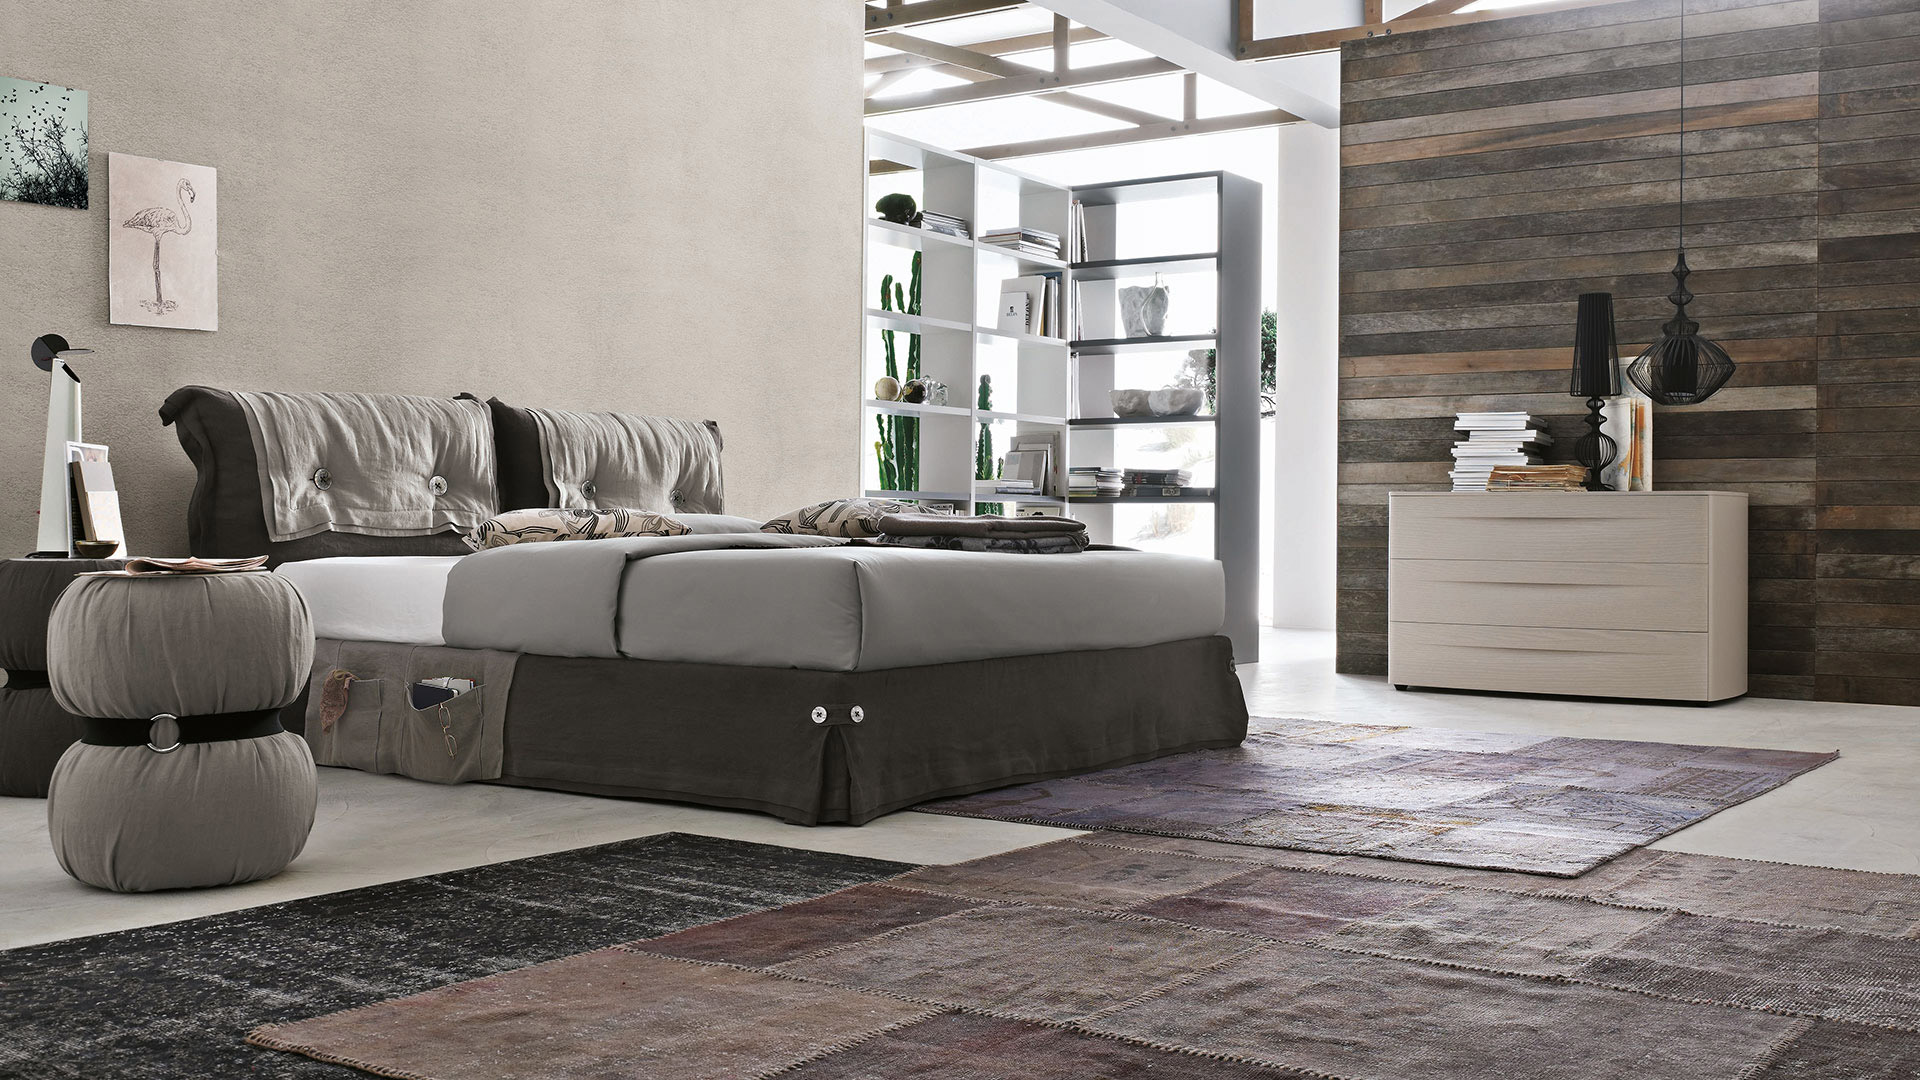 Beautiful complementi d arredo camera da letto gallery for Arredamento casa camera da letto